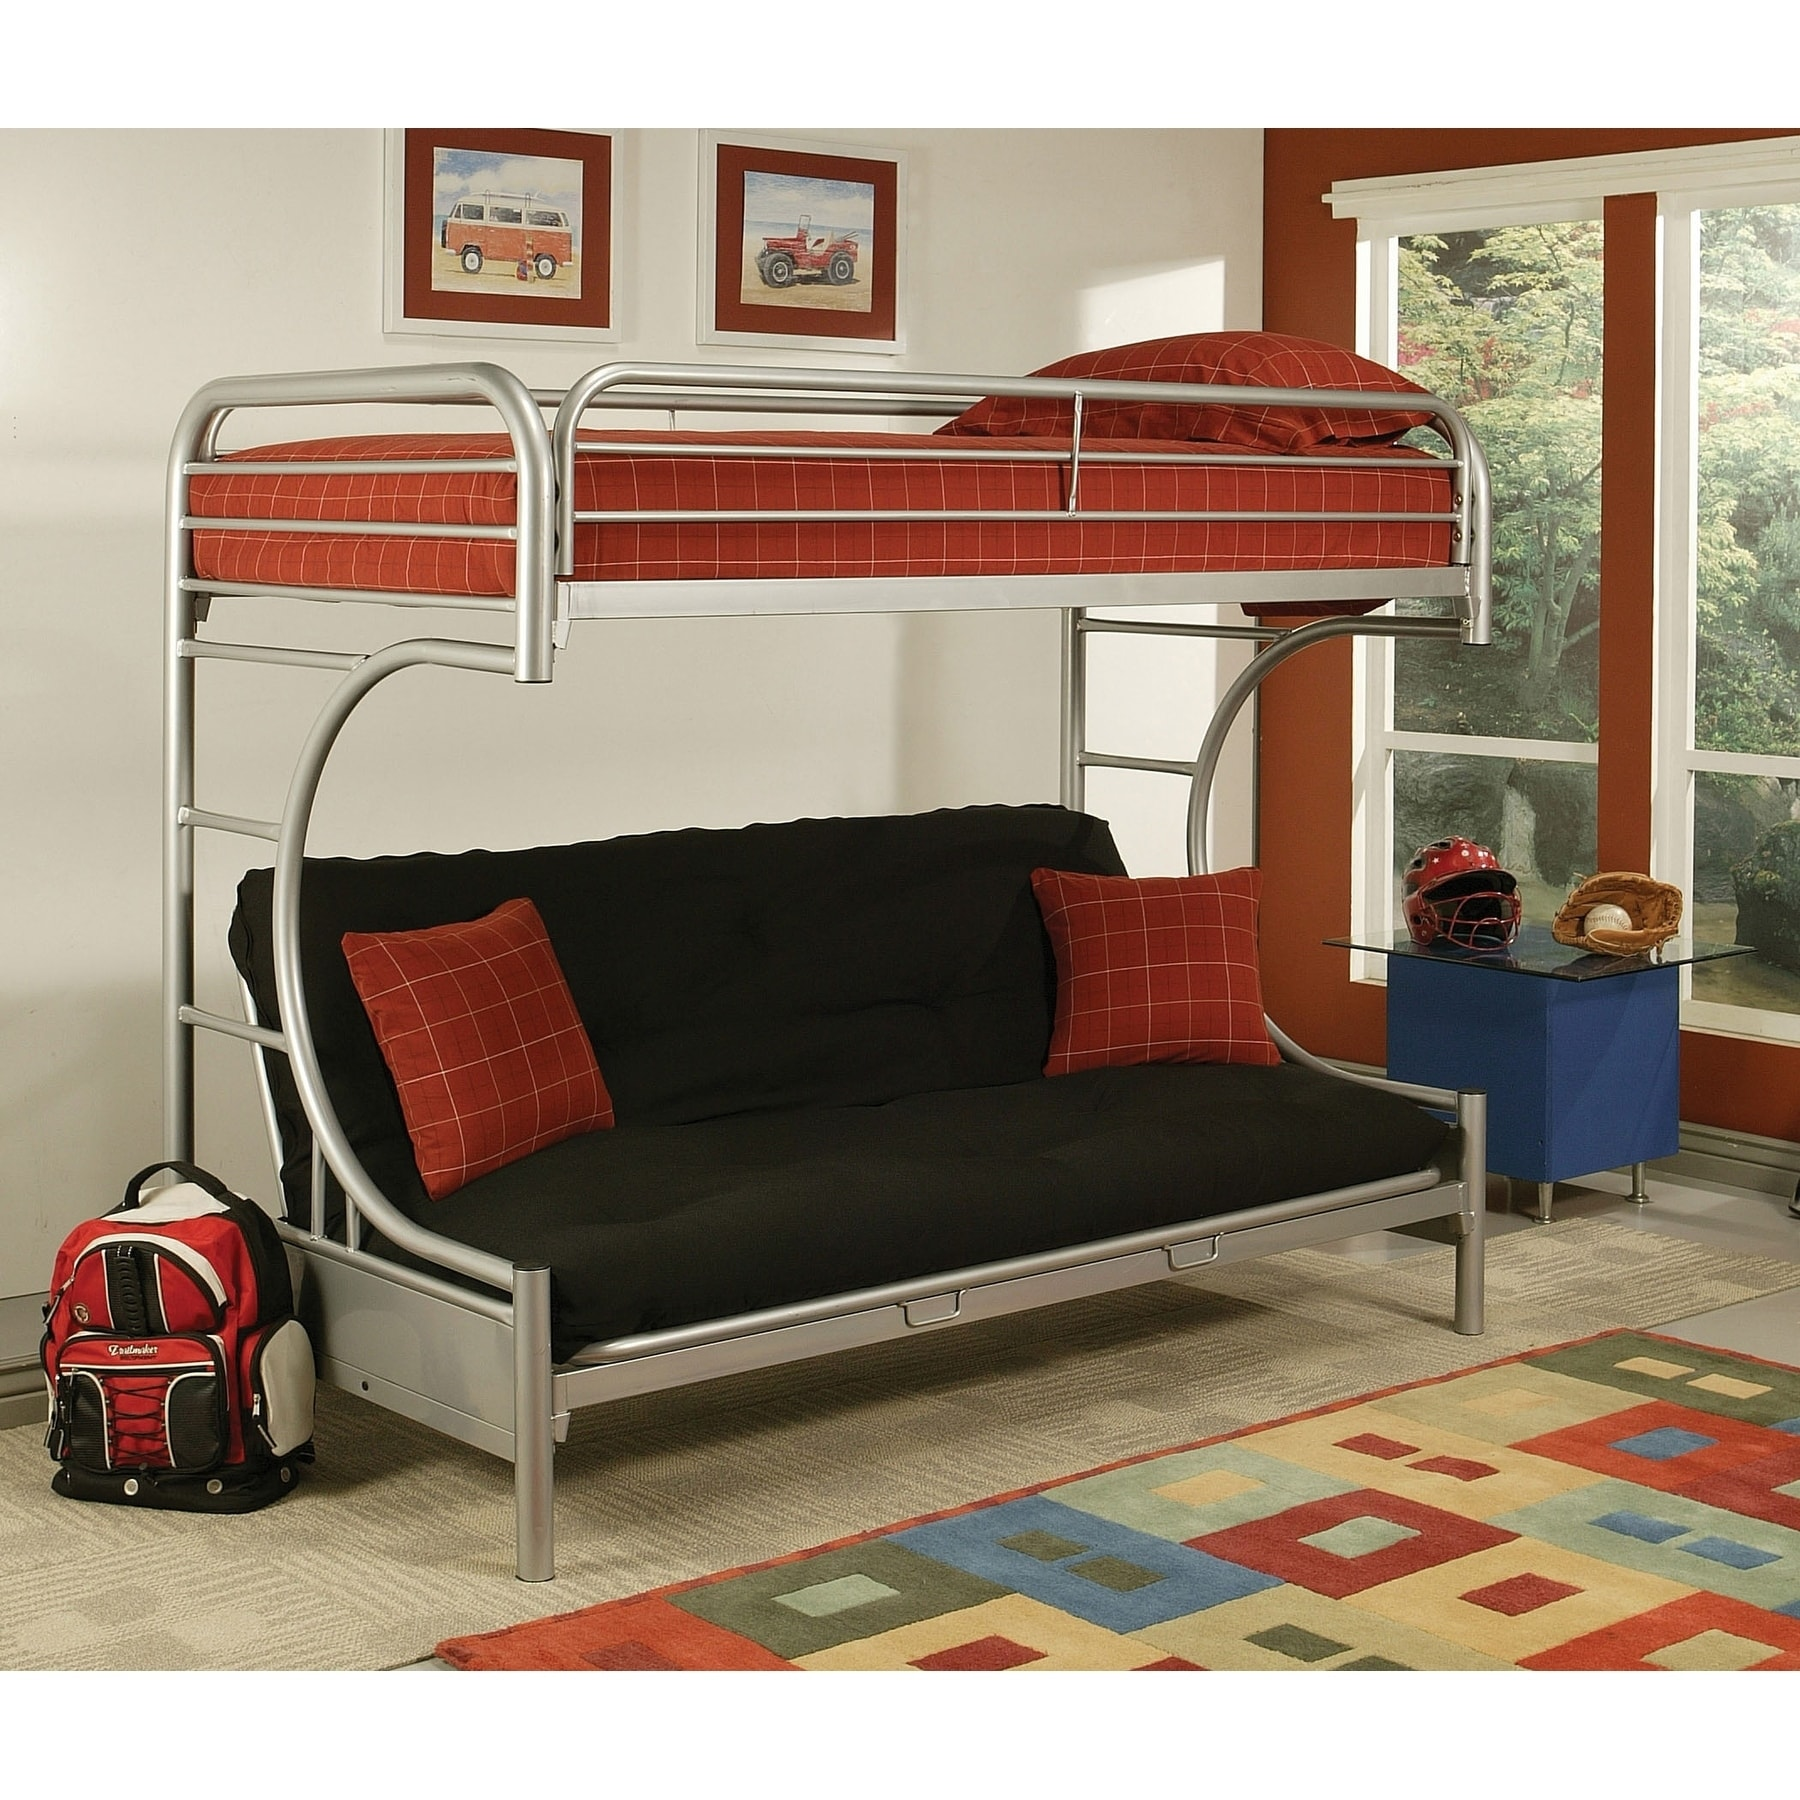 eclipse twin full futon bunk bed   free shipping today   overstock     17131332 eclipse twin full futon bunk bed   free shipping today   overstock      rh   overstock